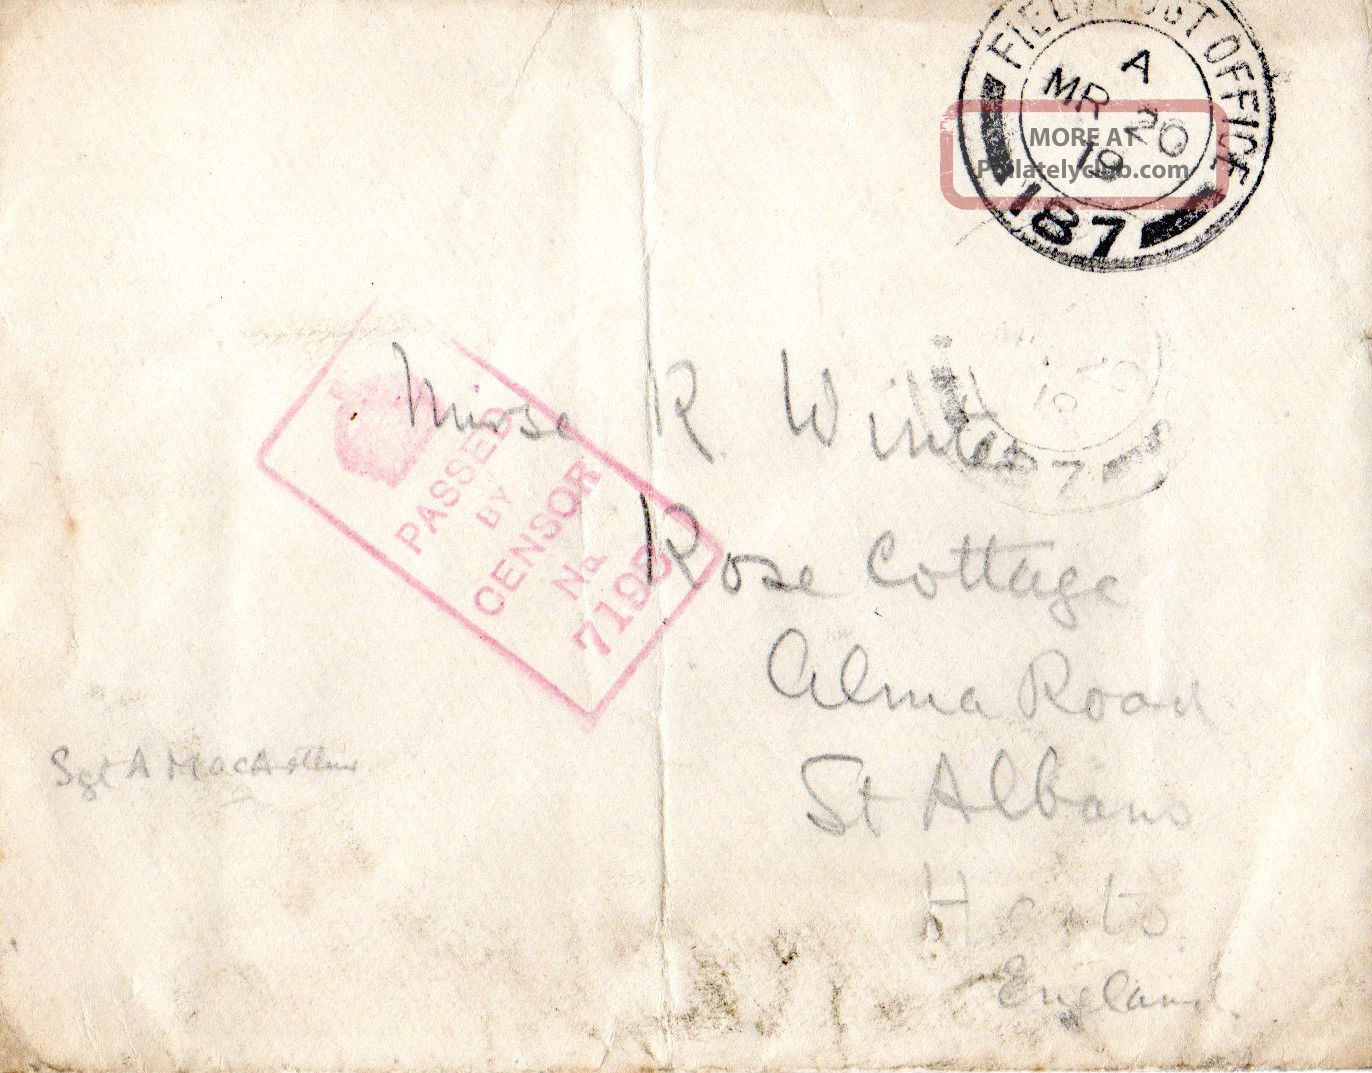 Gb 20 March 1919 World War 1 Soldiers Post Envelope Field Post Office & Censor Topical Stamps photo